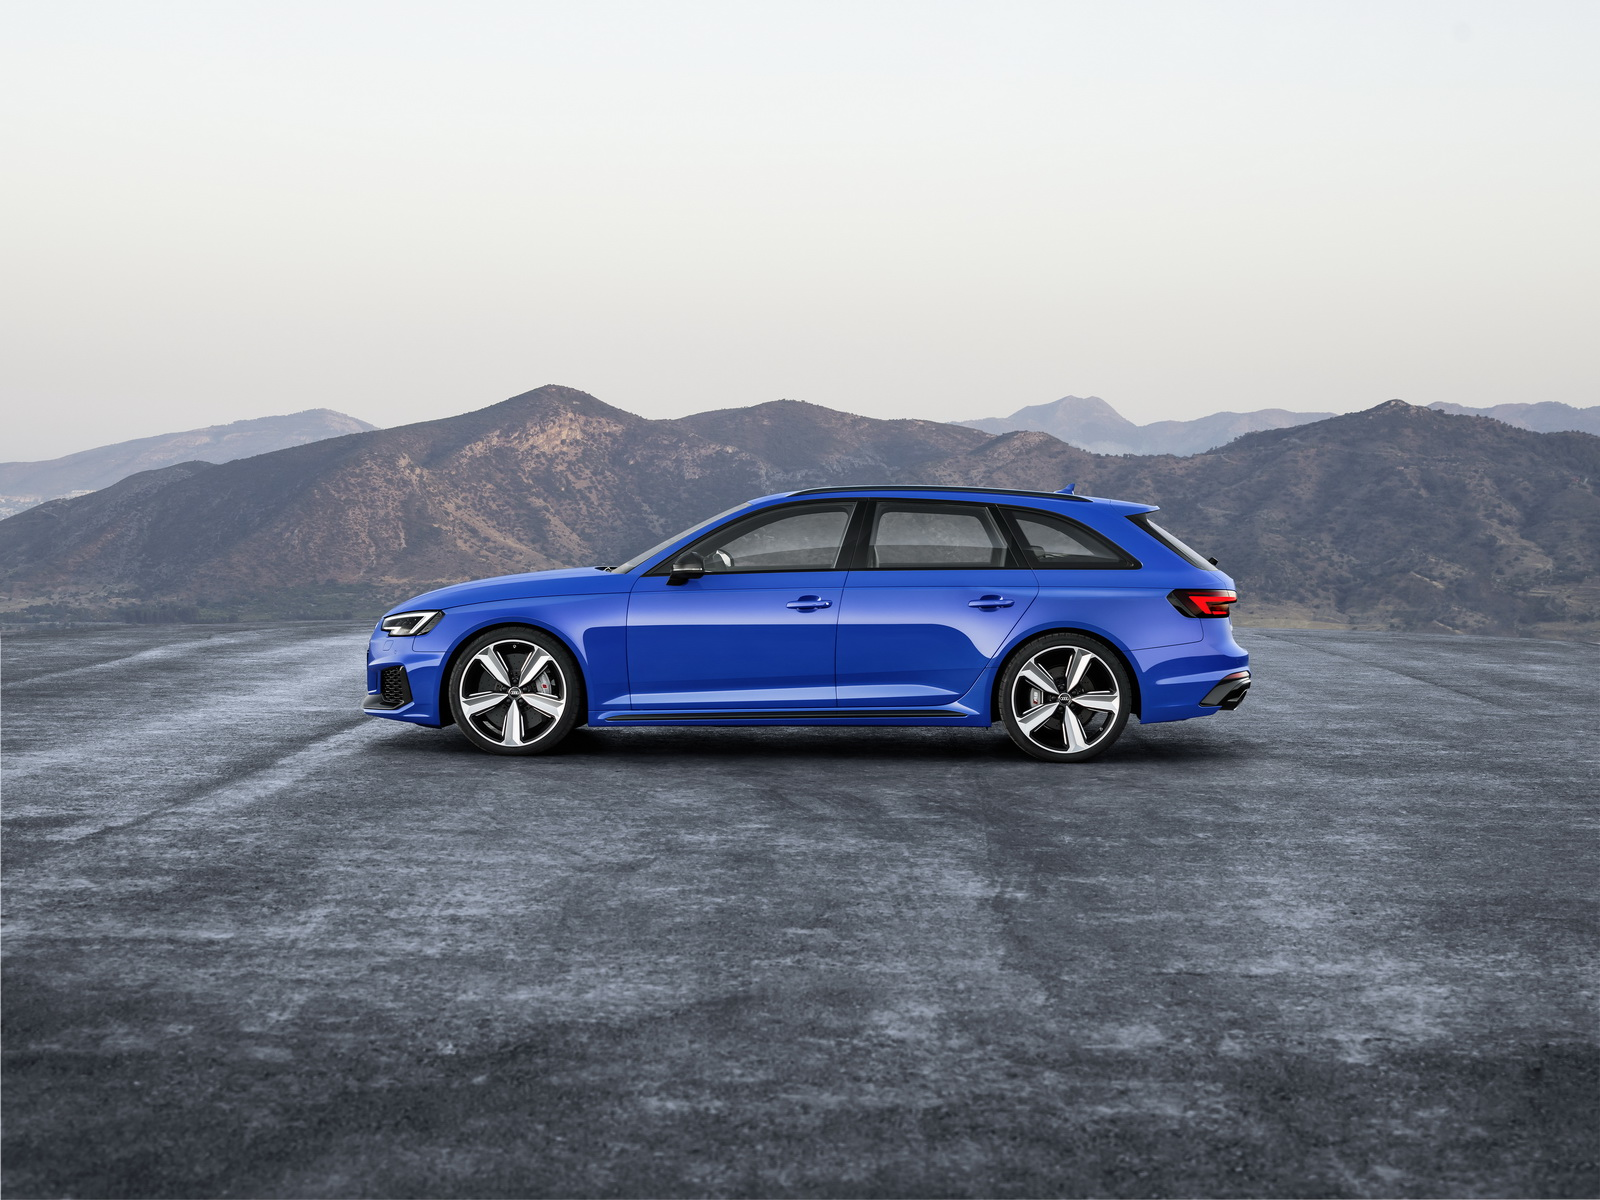 2018 Audi RS4 Avant Priced In Germany, Prepare To Pony Up EUR 79,800 ...